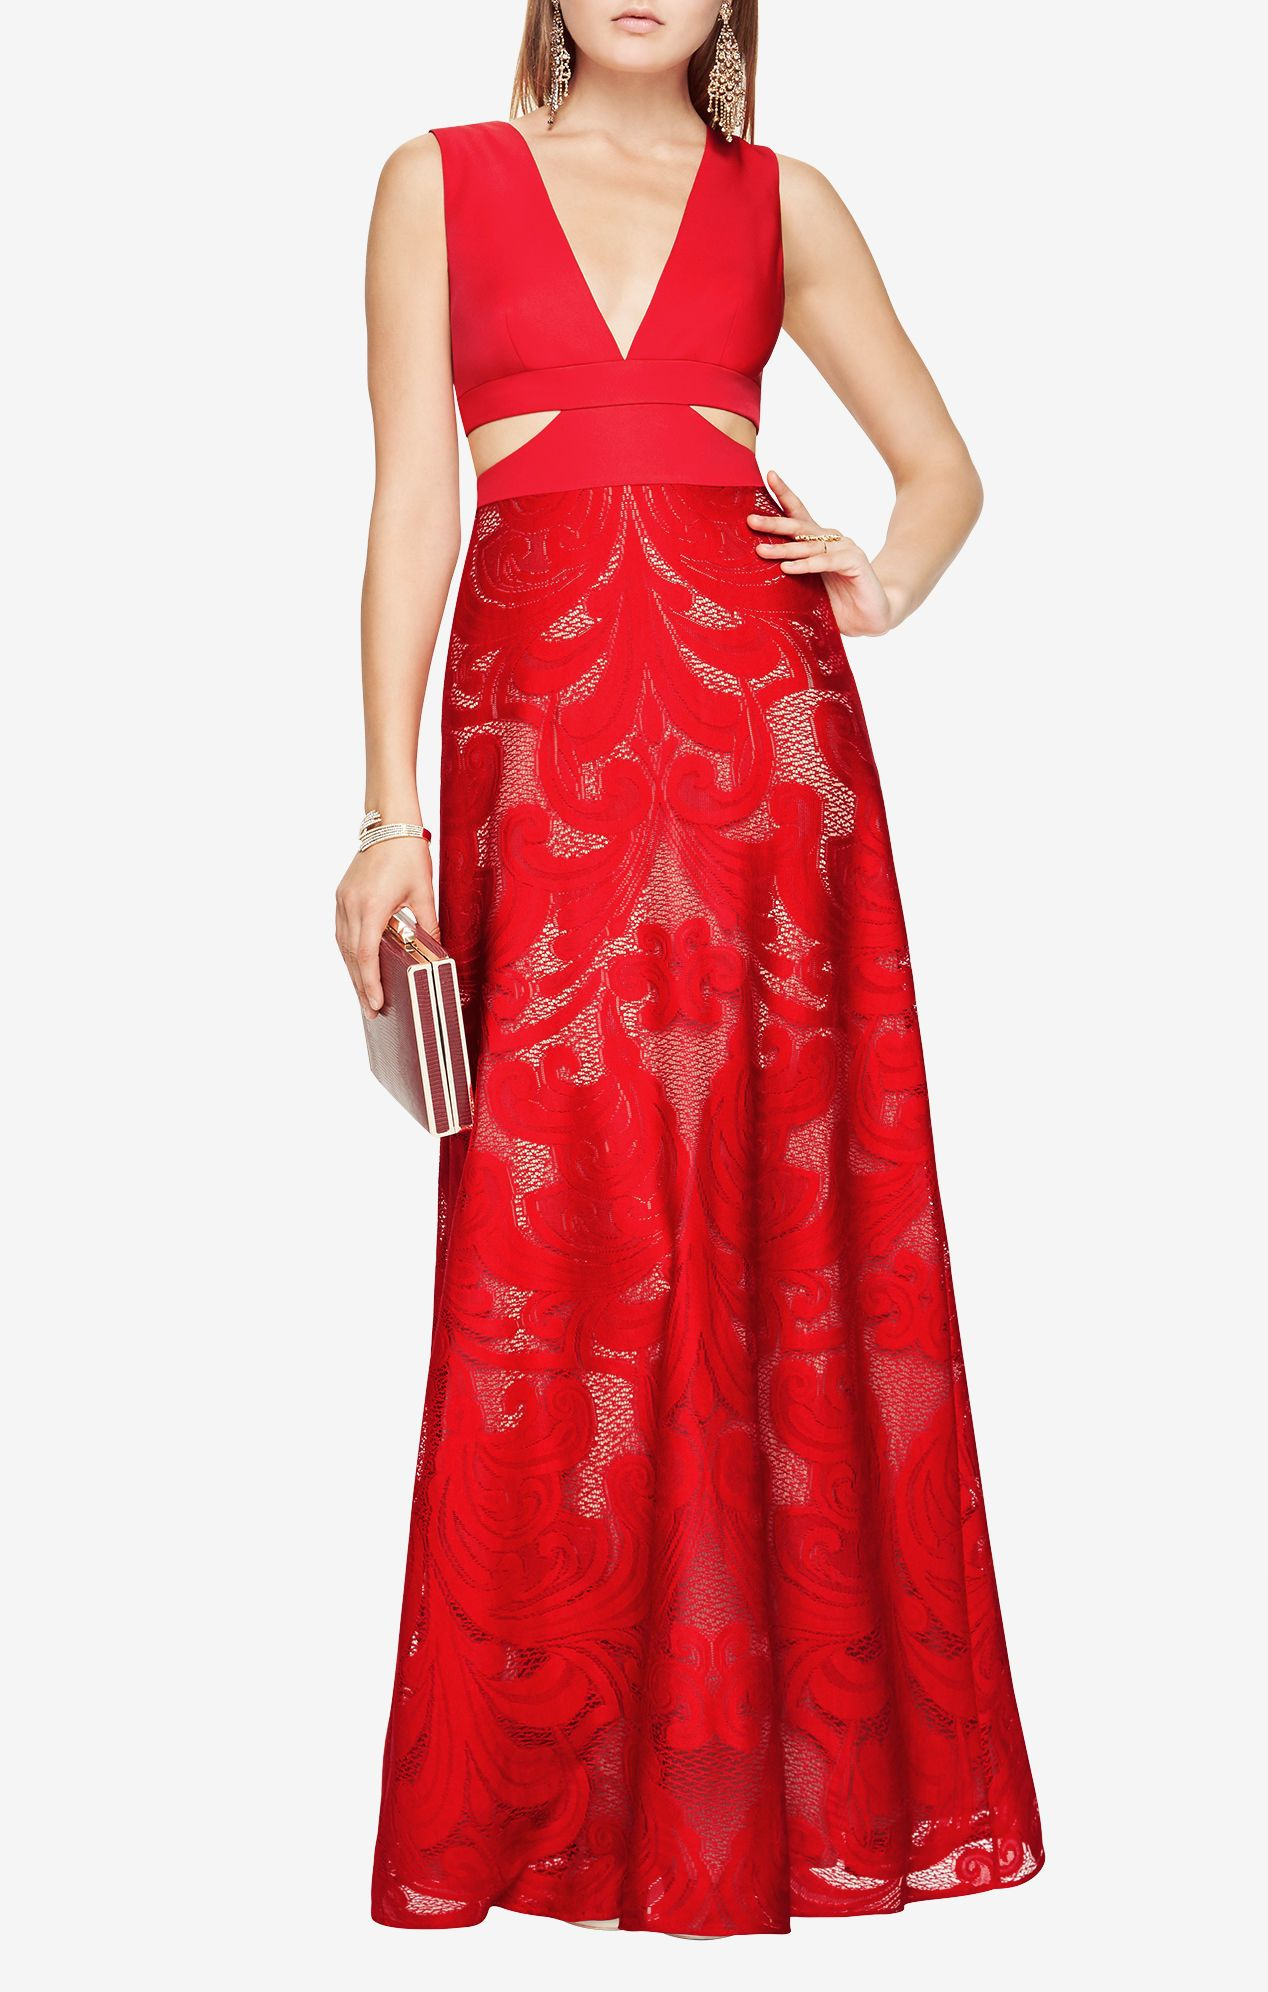 BCBG - \'Marilyne\' Cutout Lace Gown in Rouge Red. | Fancy and Formal ...